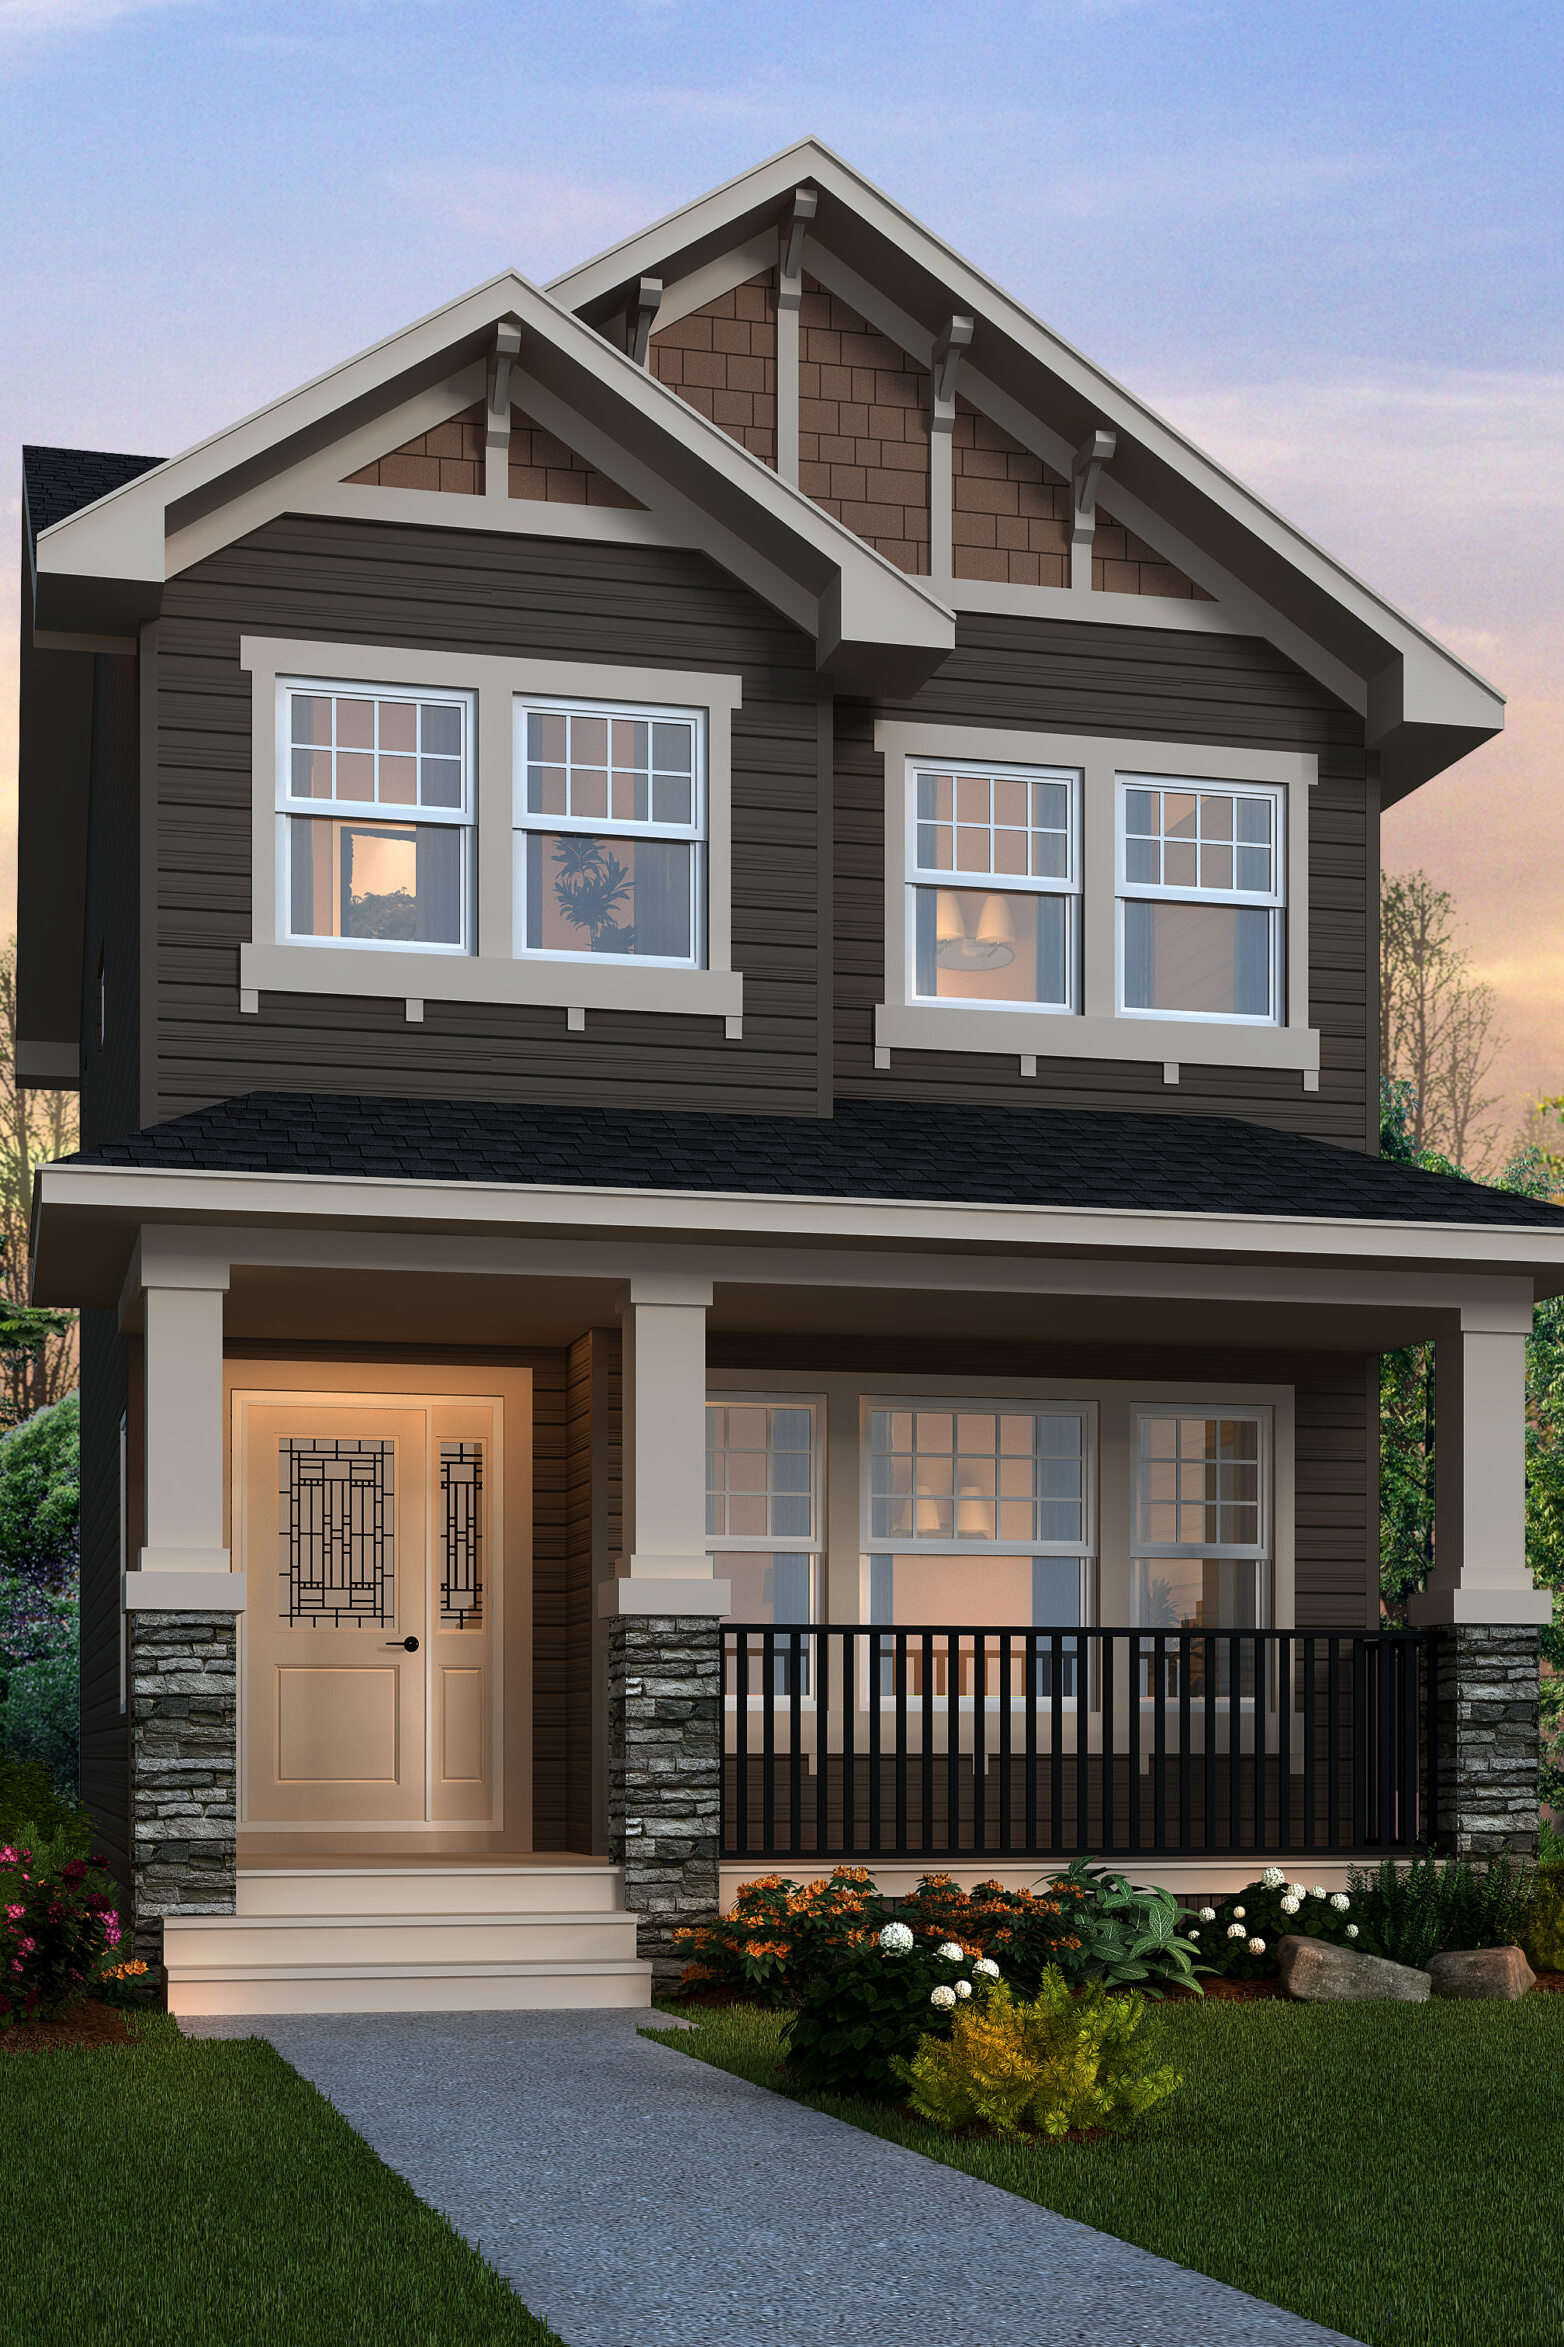 A modern prairie laned home with detached garage features white window trim, dark grey siding and rock detail, including a wide front porch.